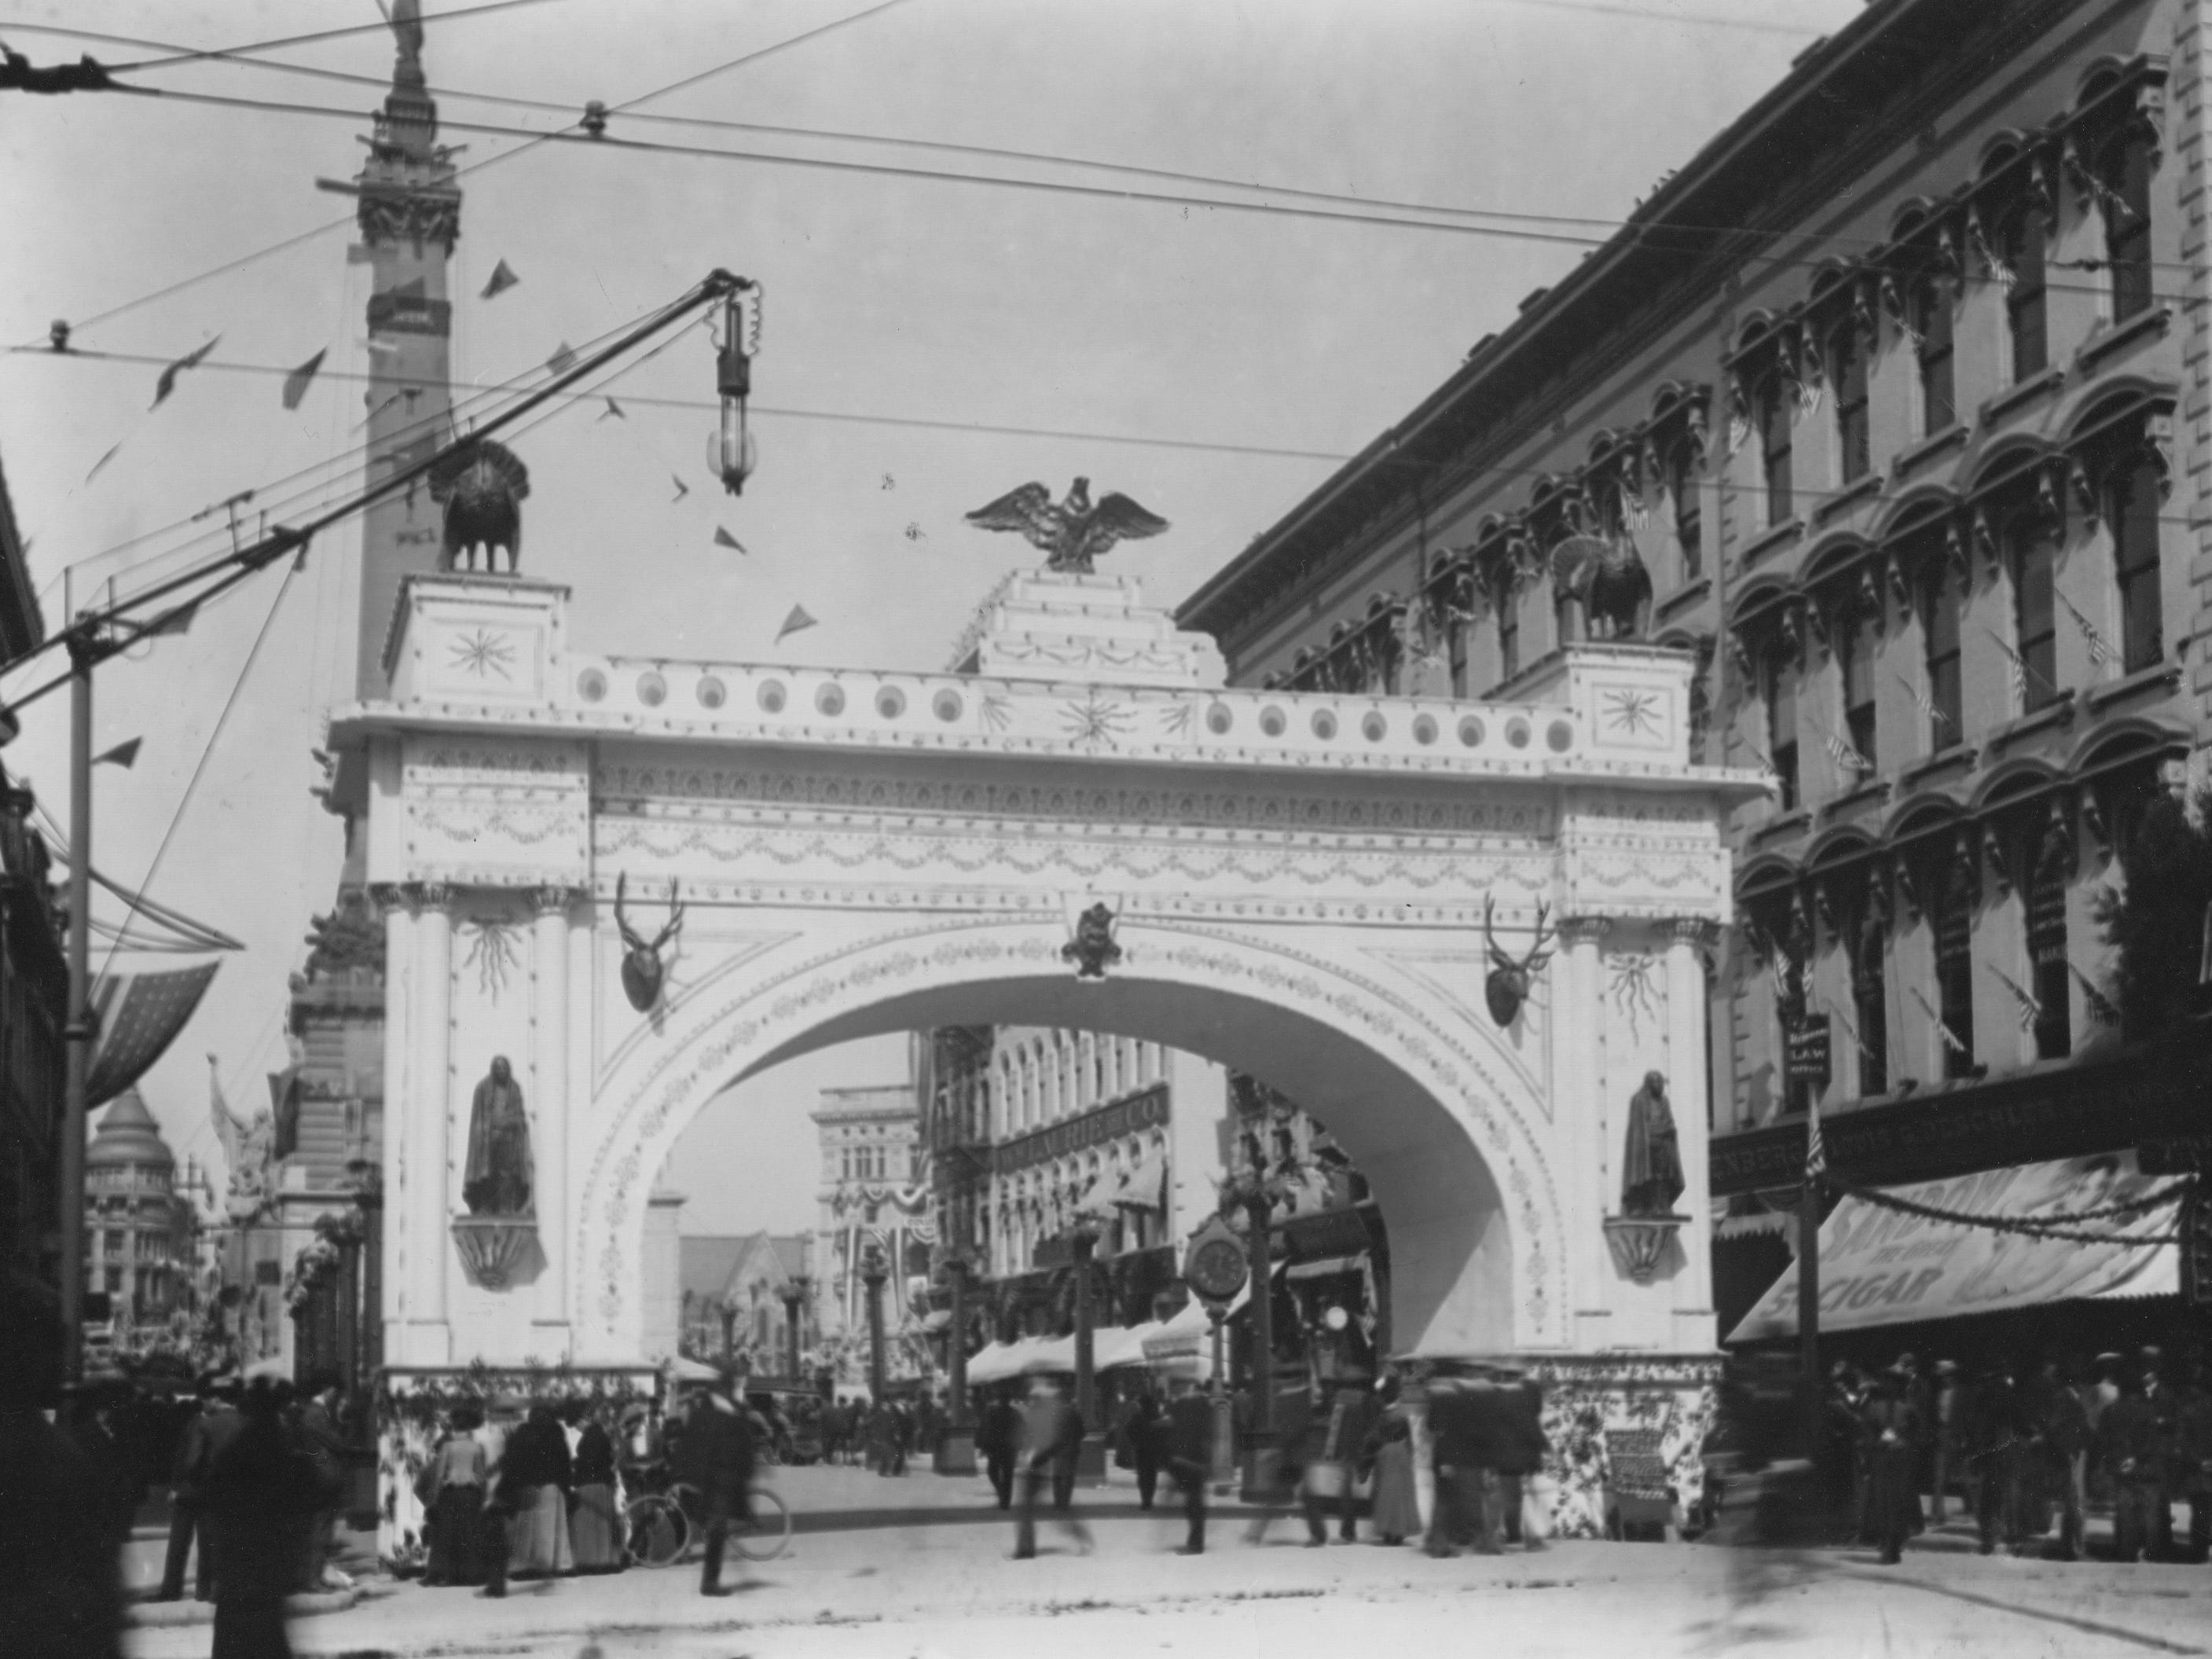 The Carnival arch on the south side of Monument Circle was erected in October 1899 in preparation for the festivities surrounding the turn of the century.